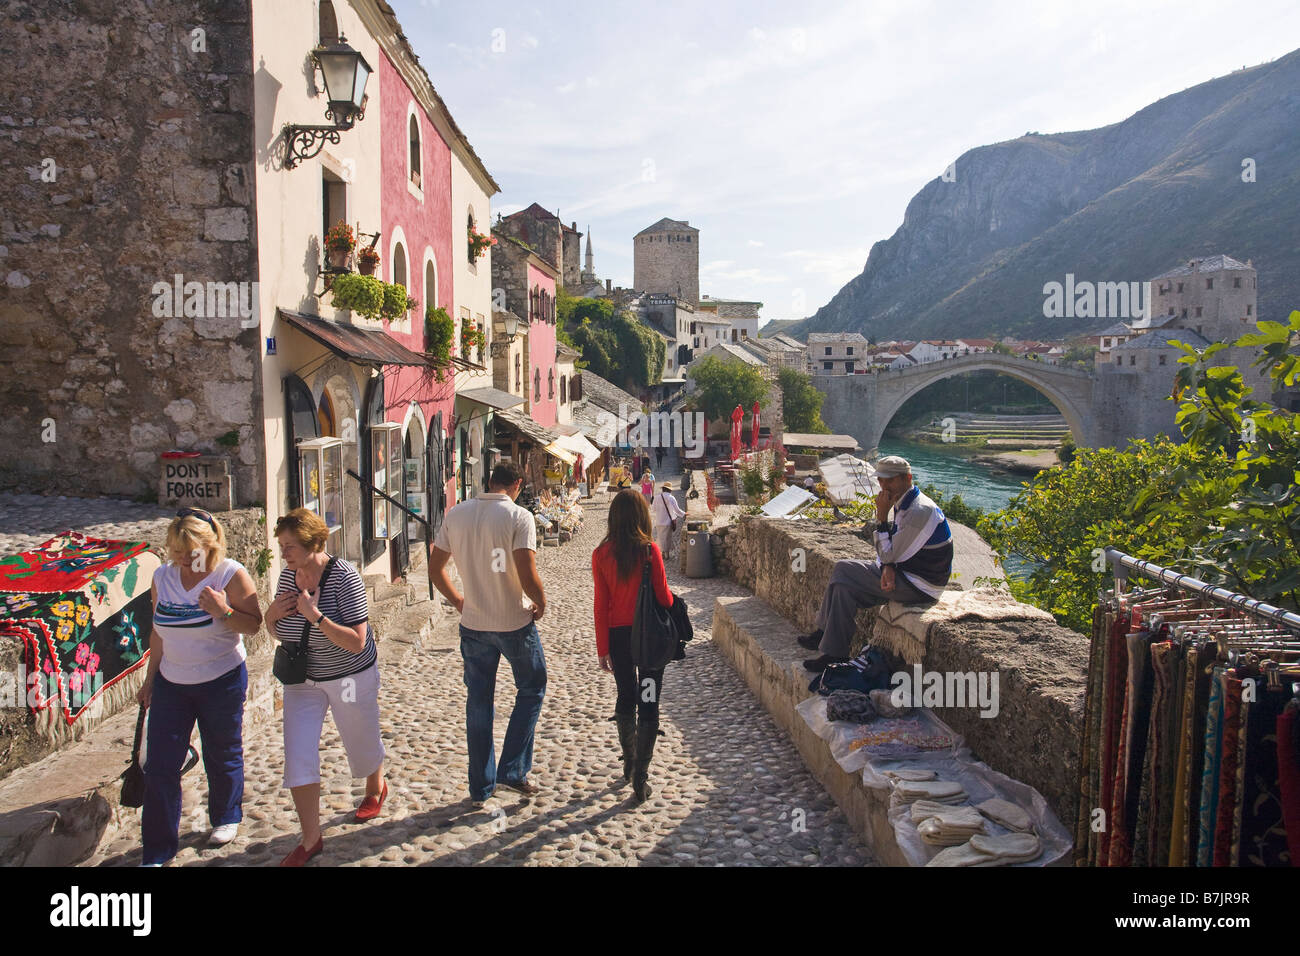 Historic Old Town of Mostar and restored 16th century bridge across the Neretva River in Bosnia Herzegovina Europe - Stock Image